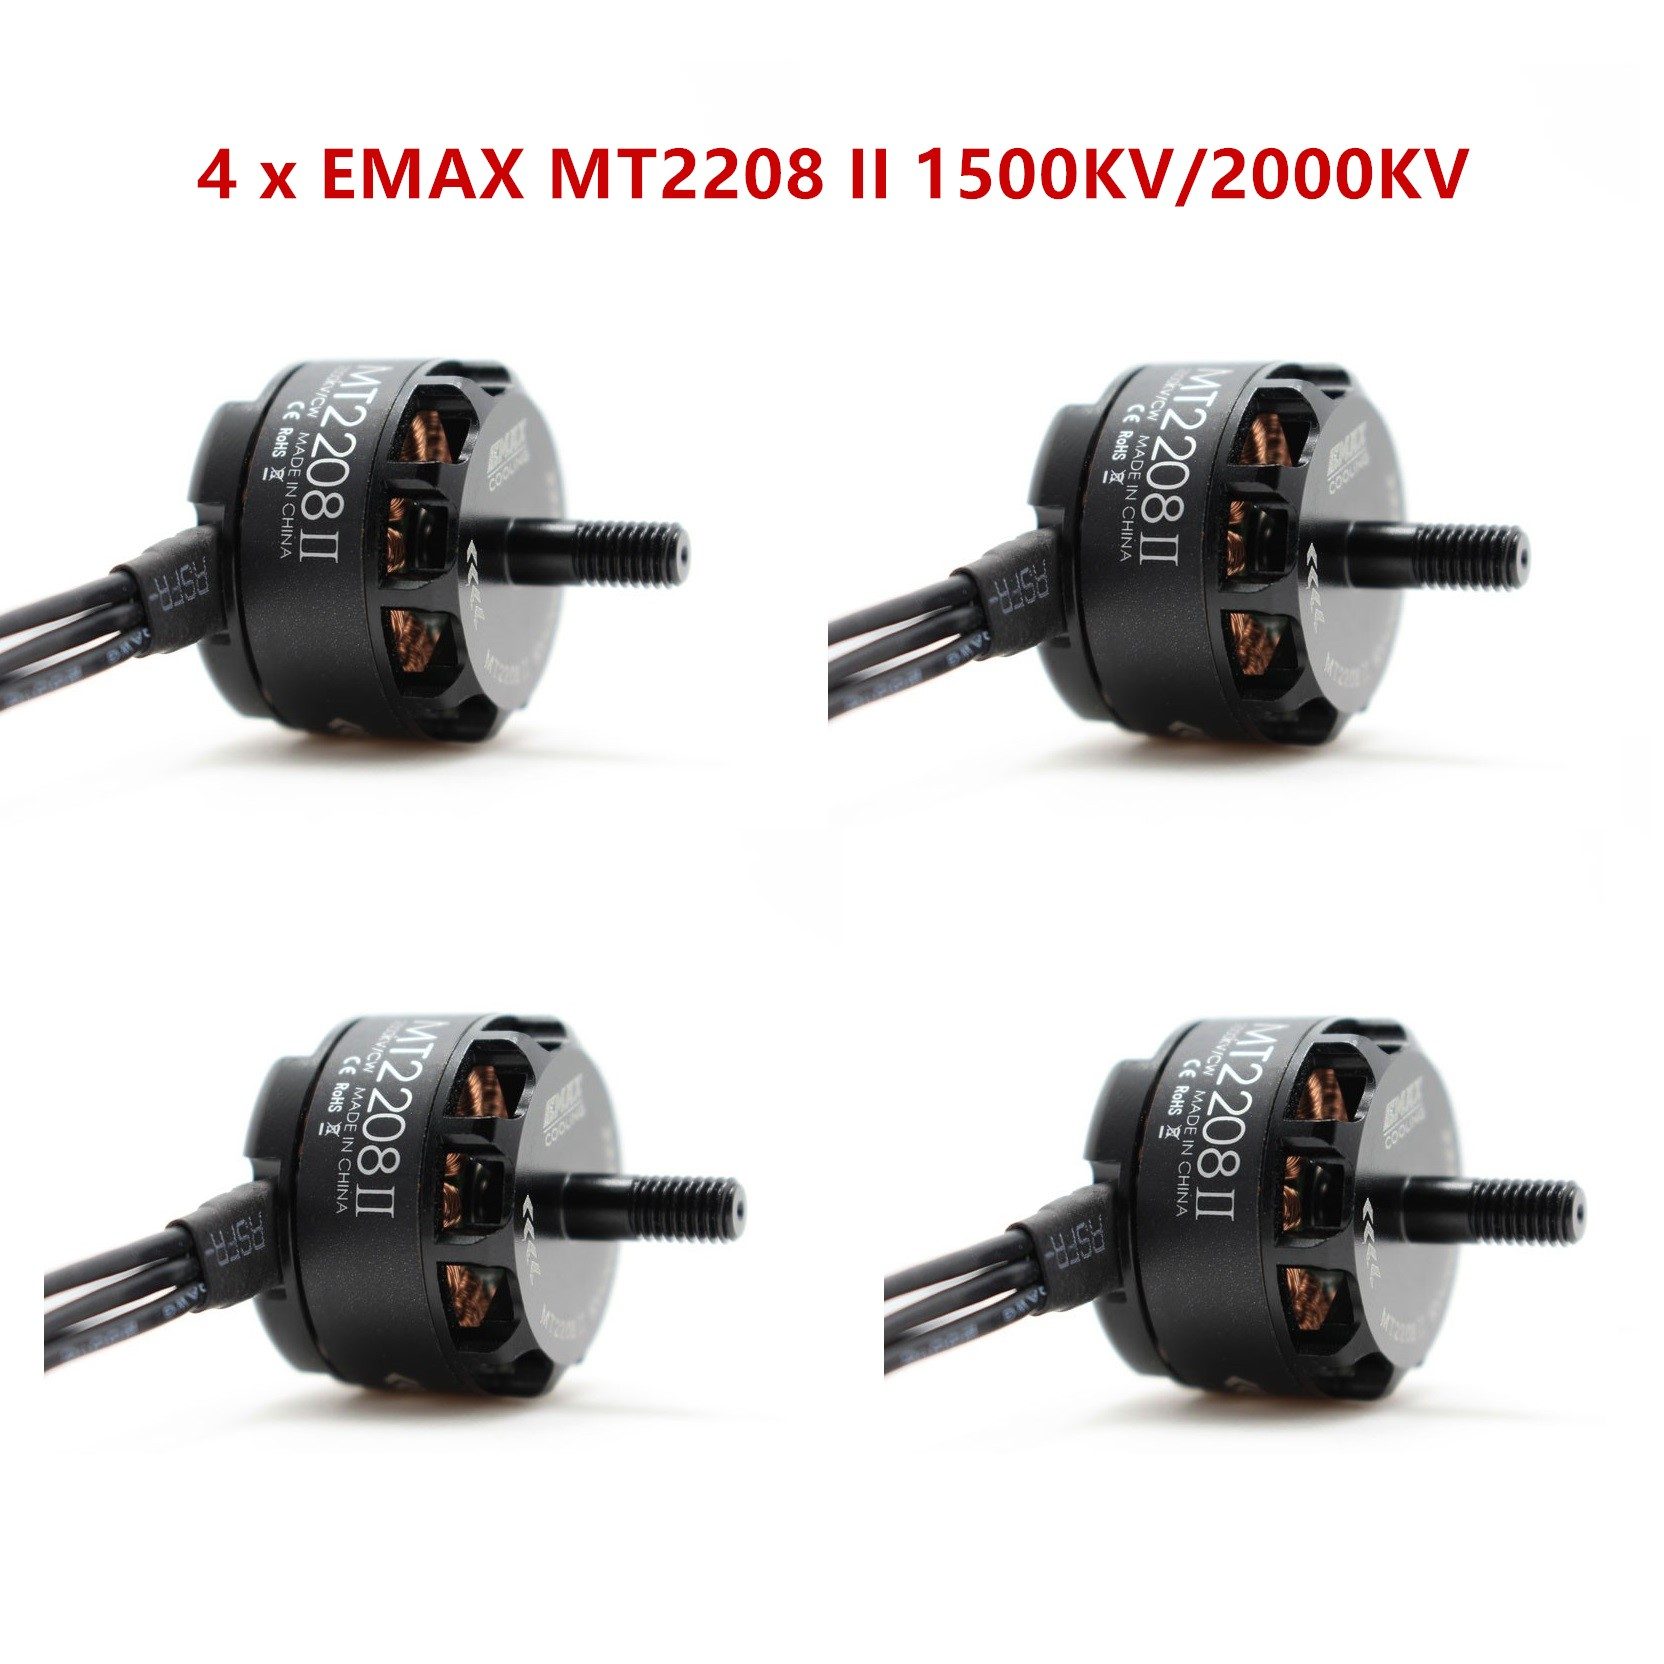 Original EMAX MT2208 II 1500KV/2000KV CW CCW Brushless Motor for RC QAV250 F330 Multicopter